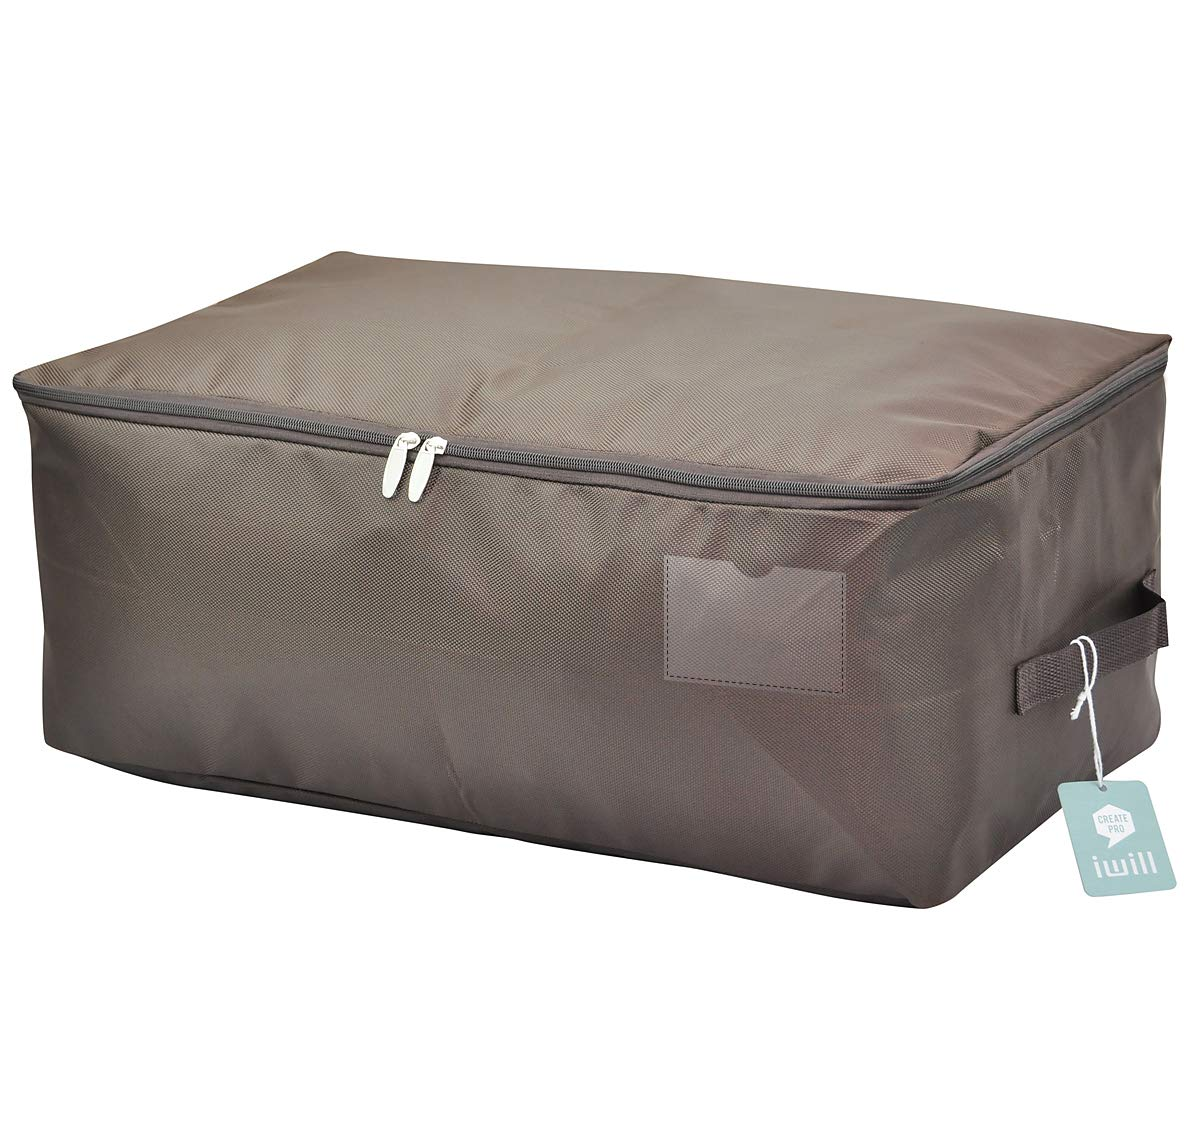 5b574af21e1a iwill CREATE PRO 25.5x15x11 inches, Blanket Storage Bag for Shelf,Coffee